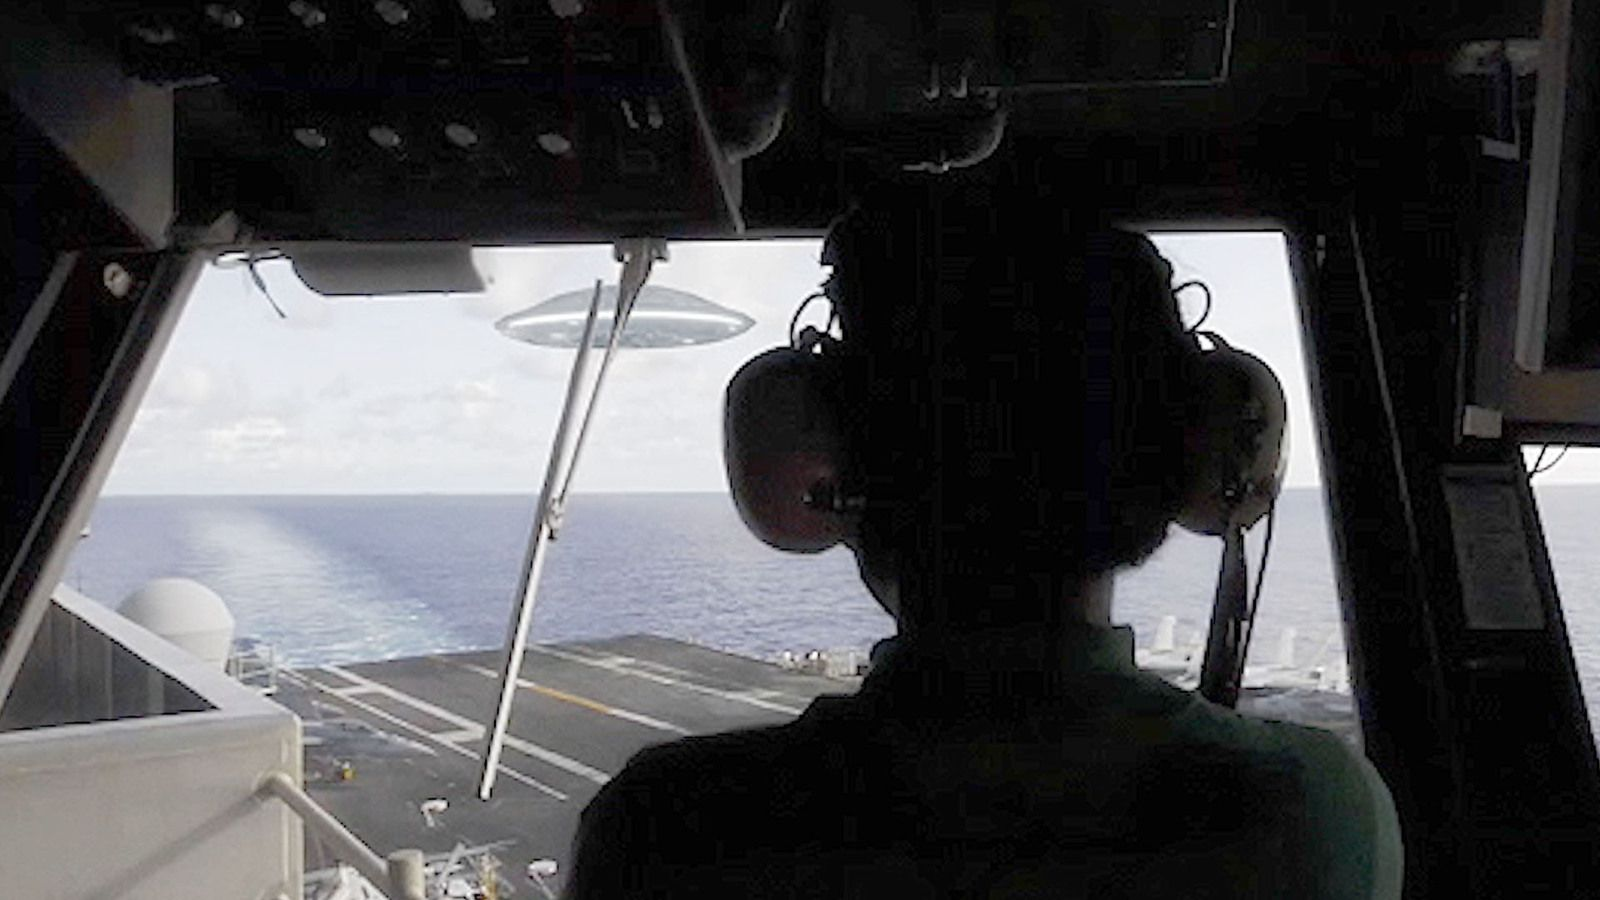 👽 UFO Landing on Aircraft Carrier USS Ronald Reagan in South China Sea